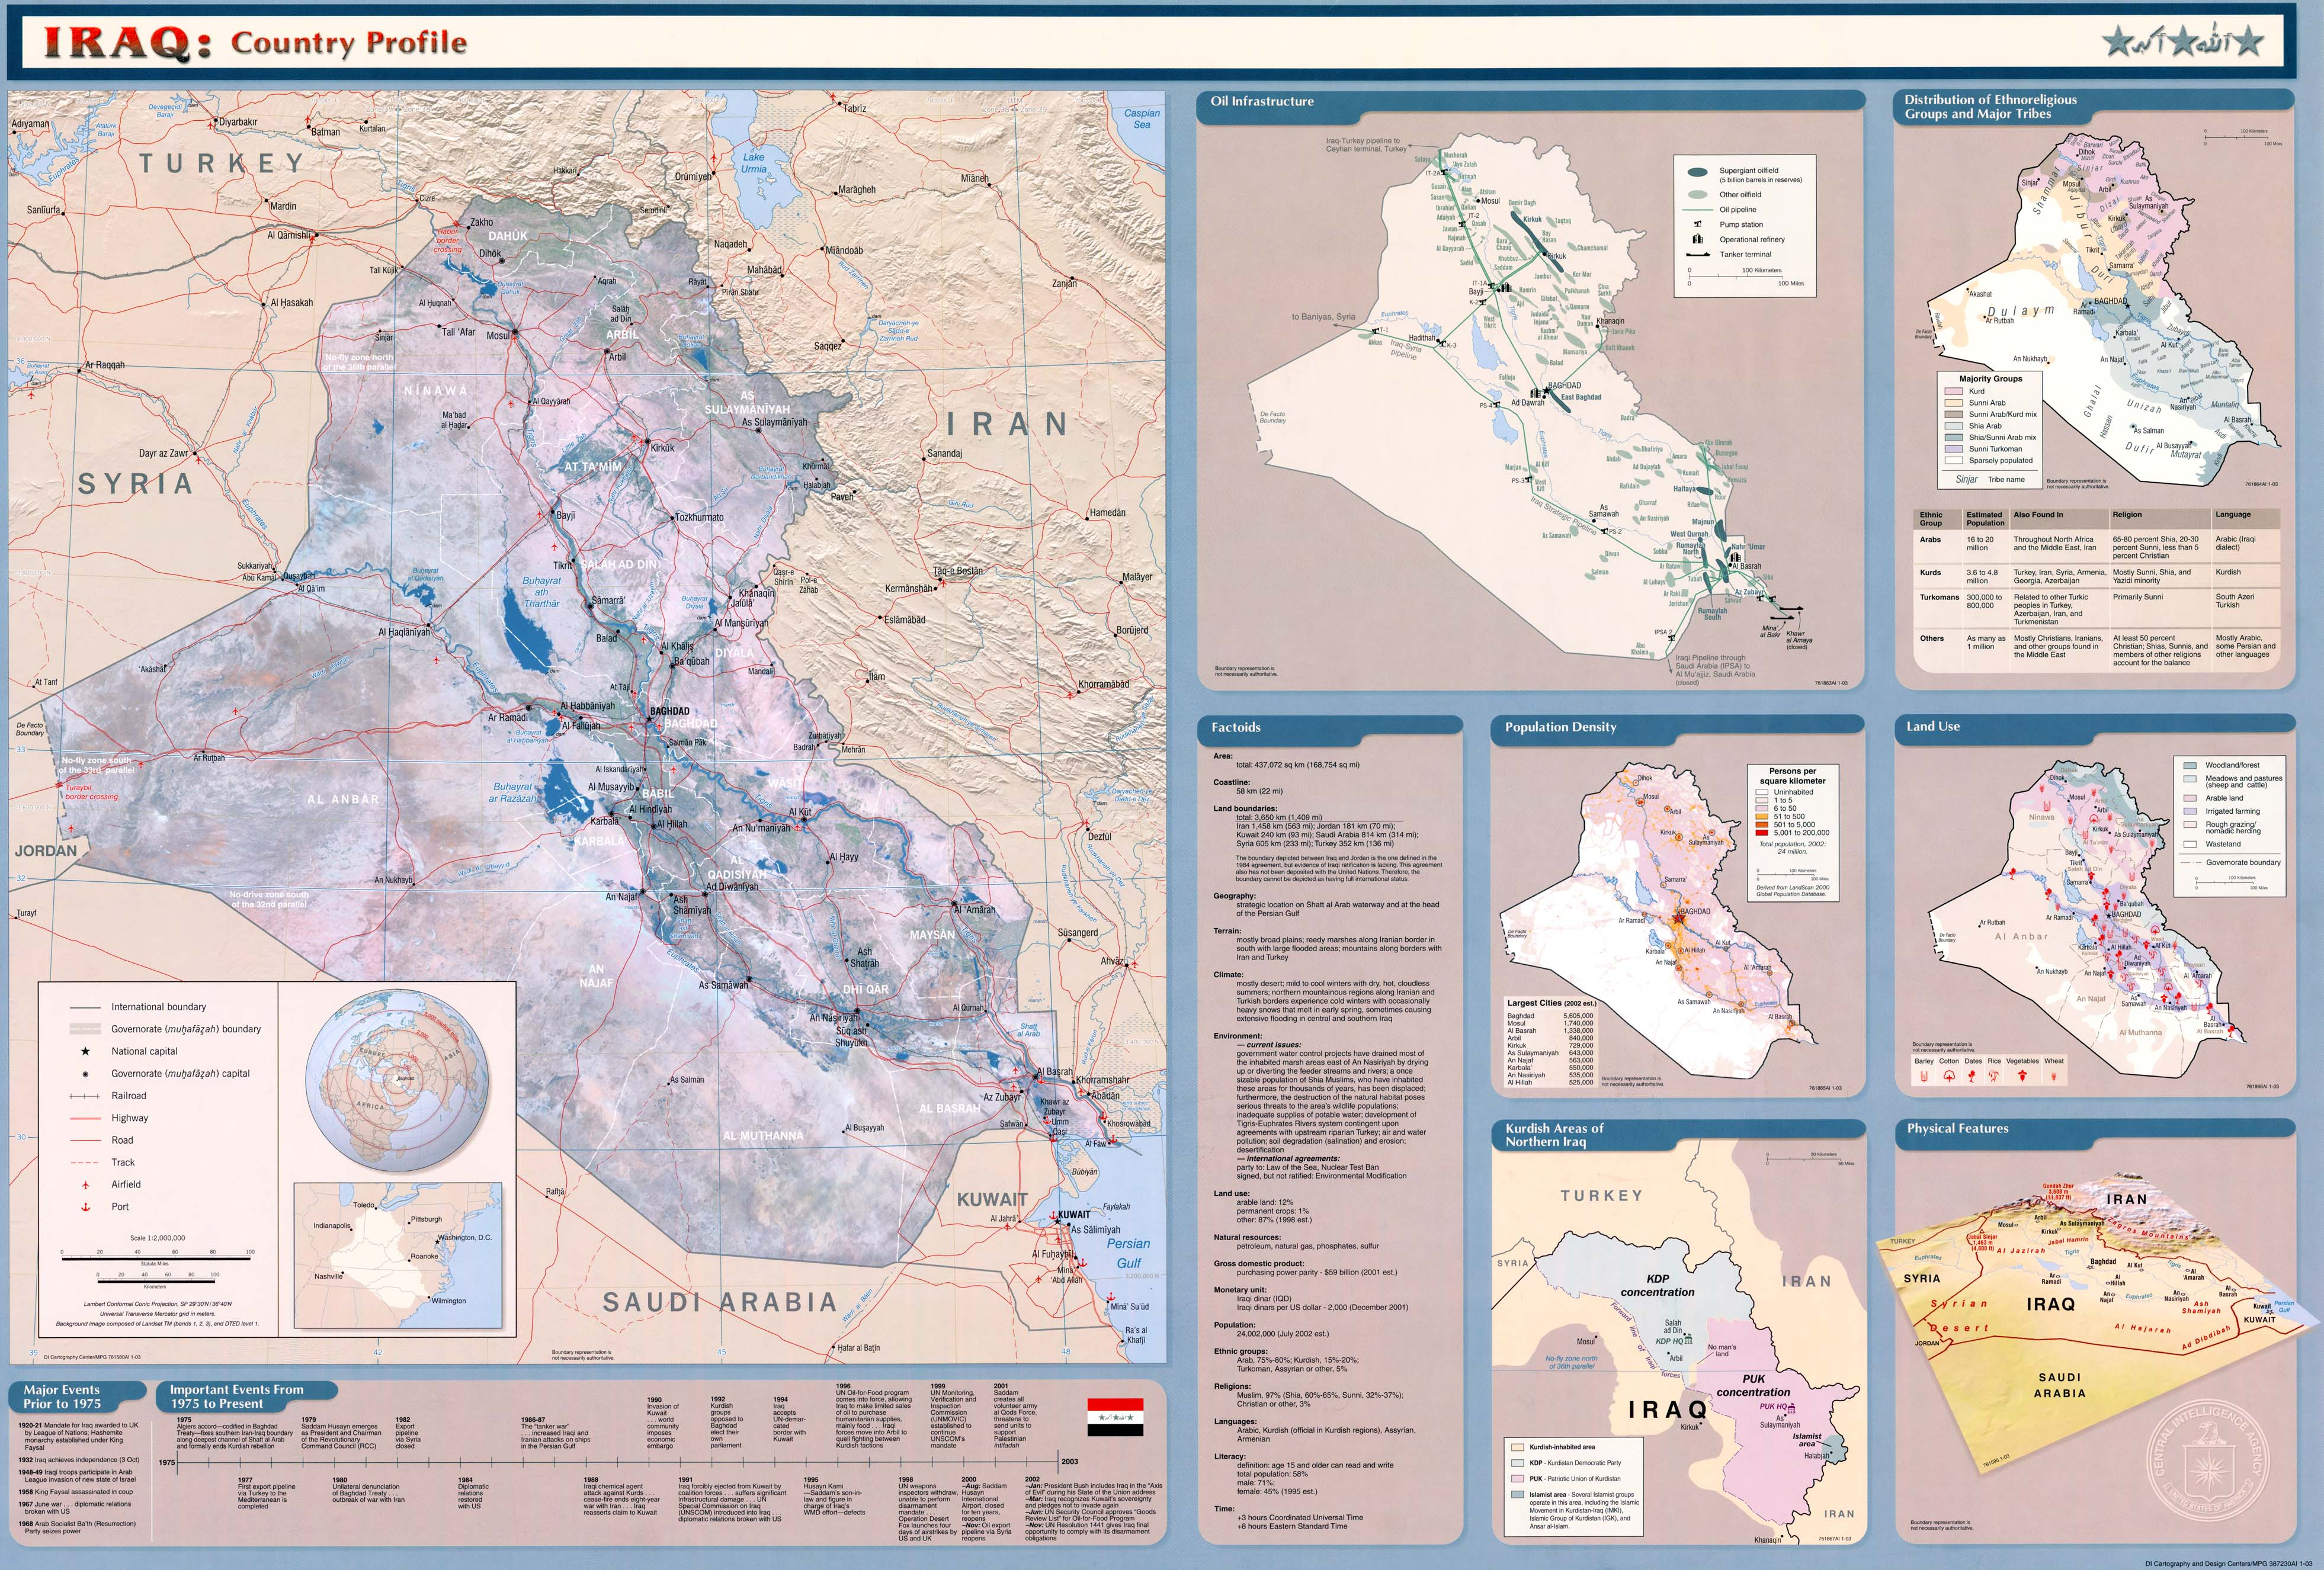 Iraq Maps The Mother of all IRAQ